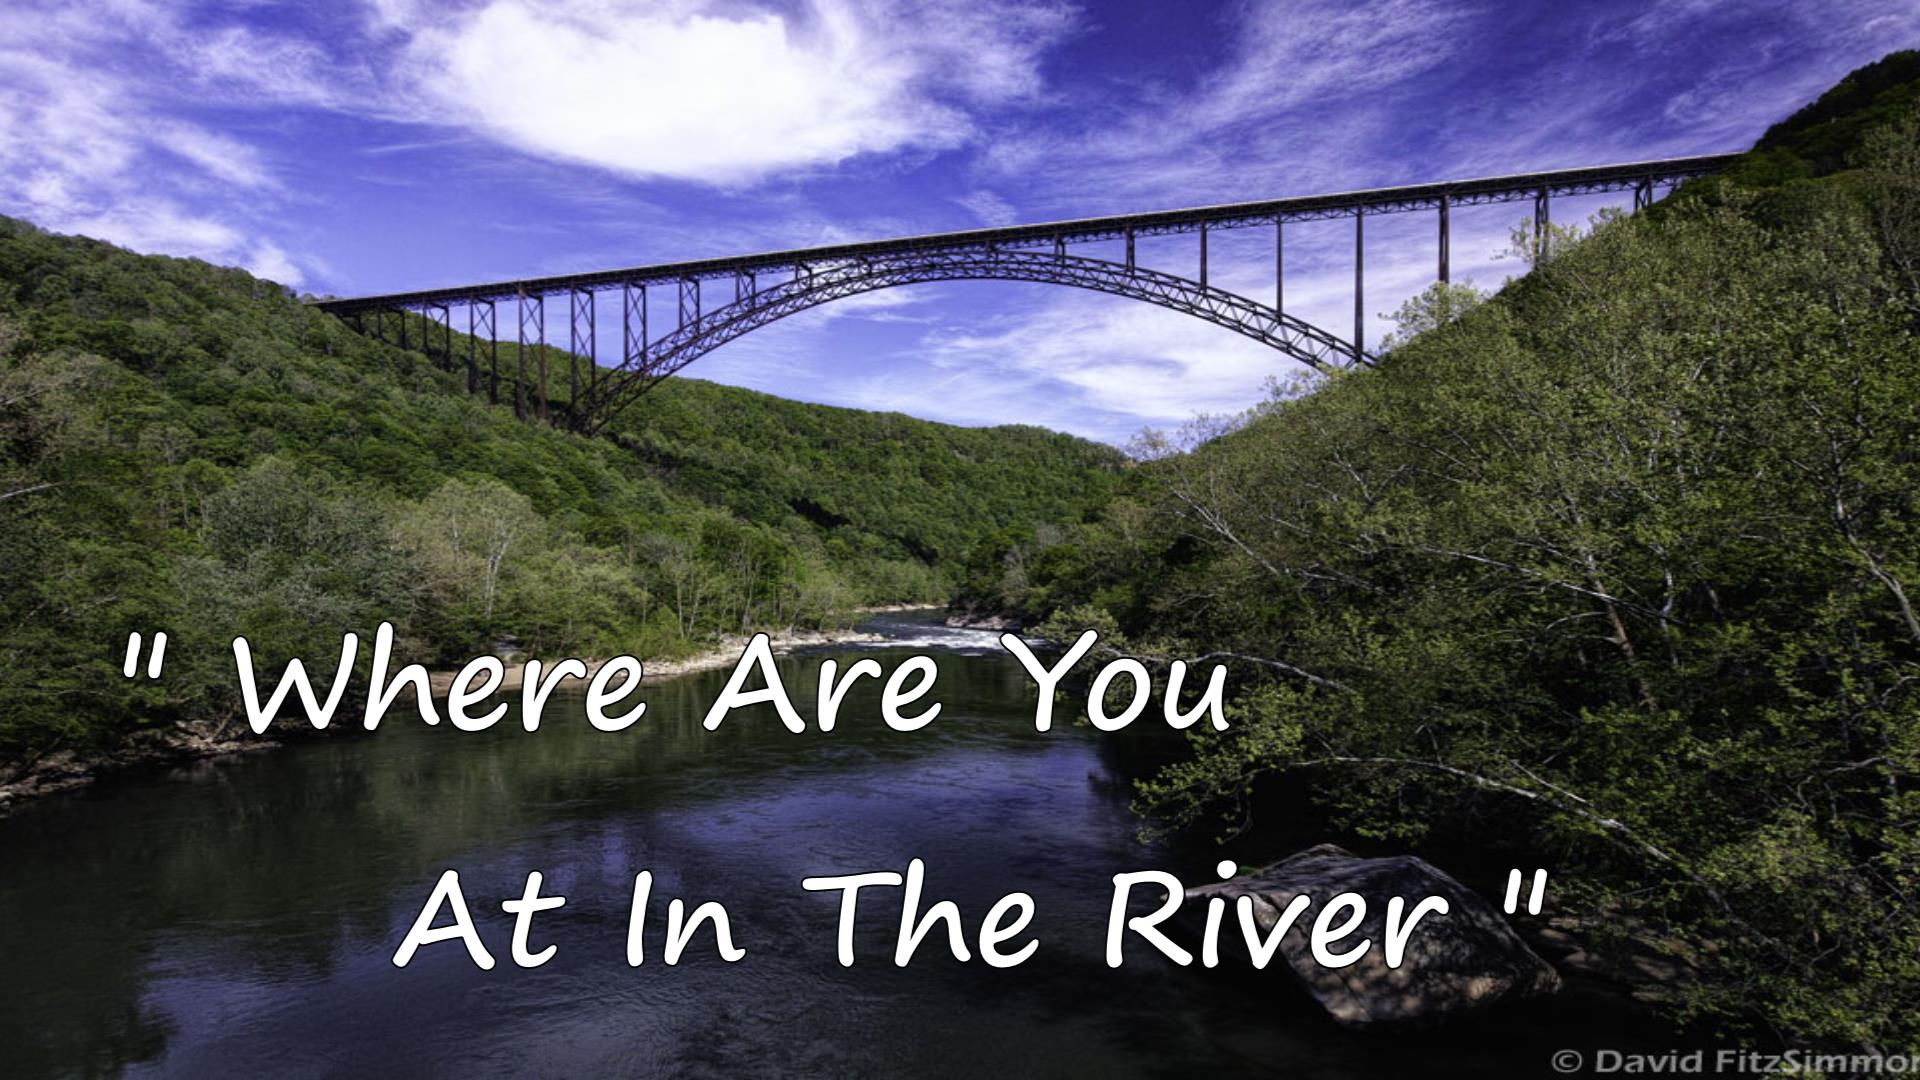 Where Are You At In The River